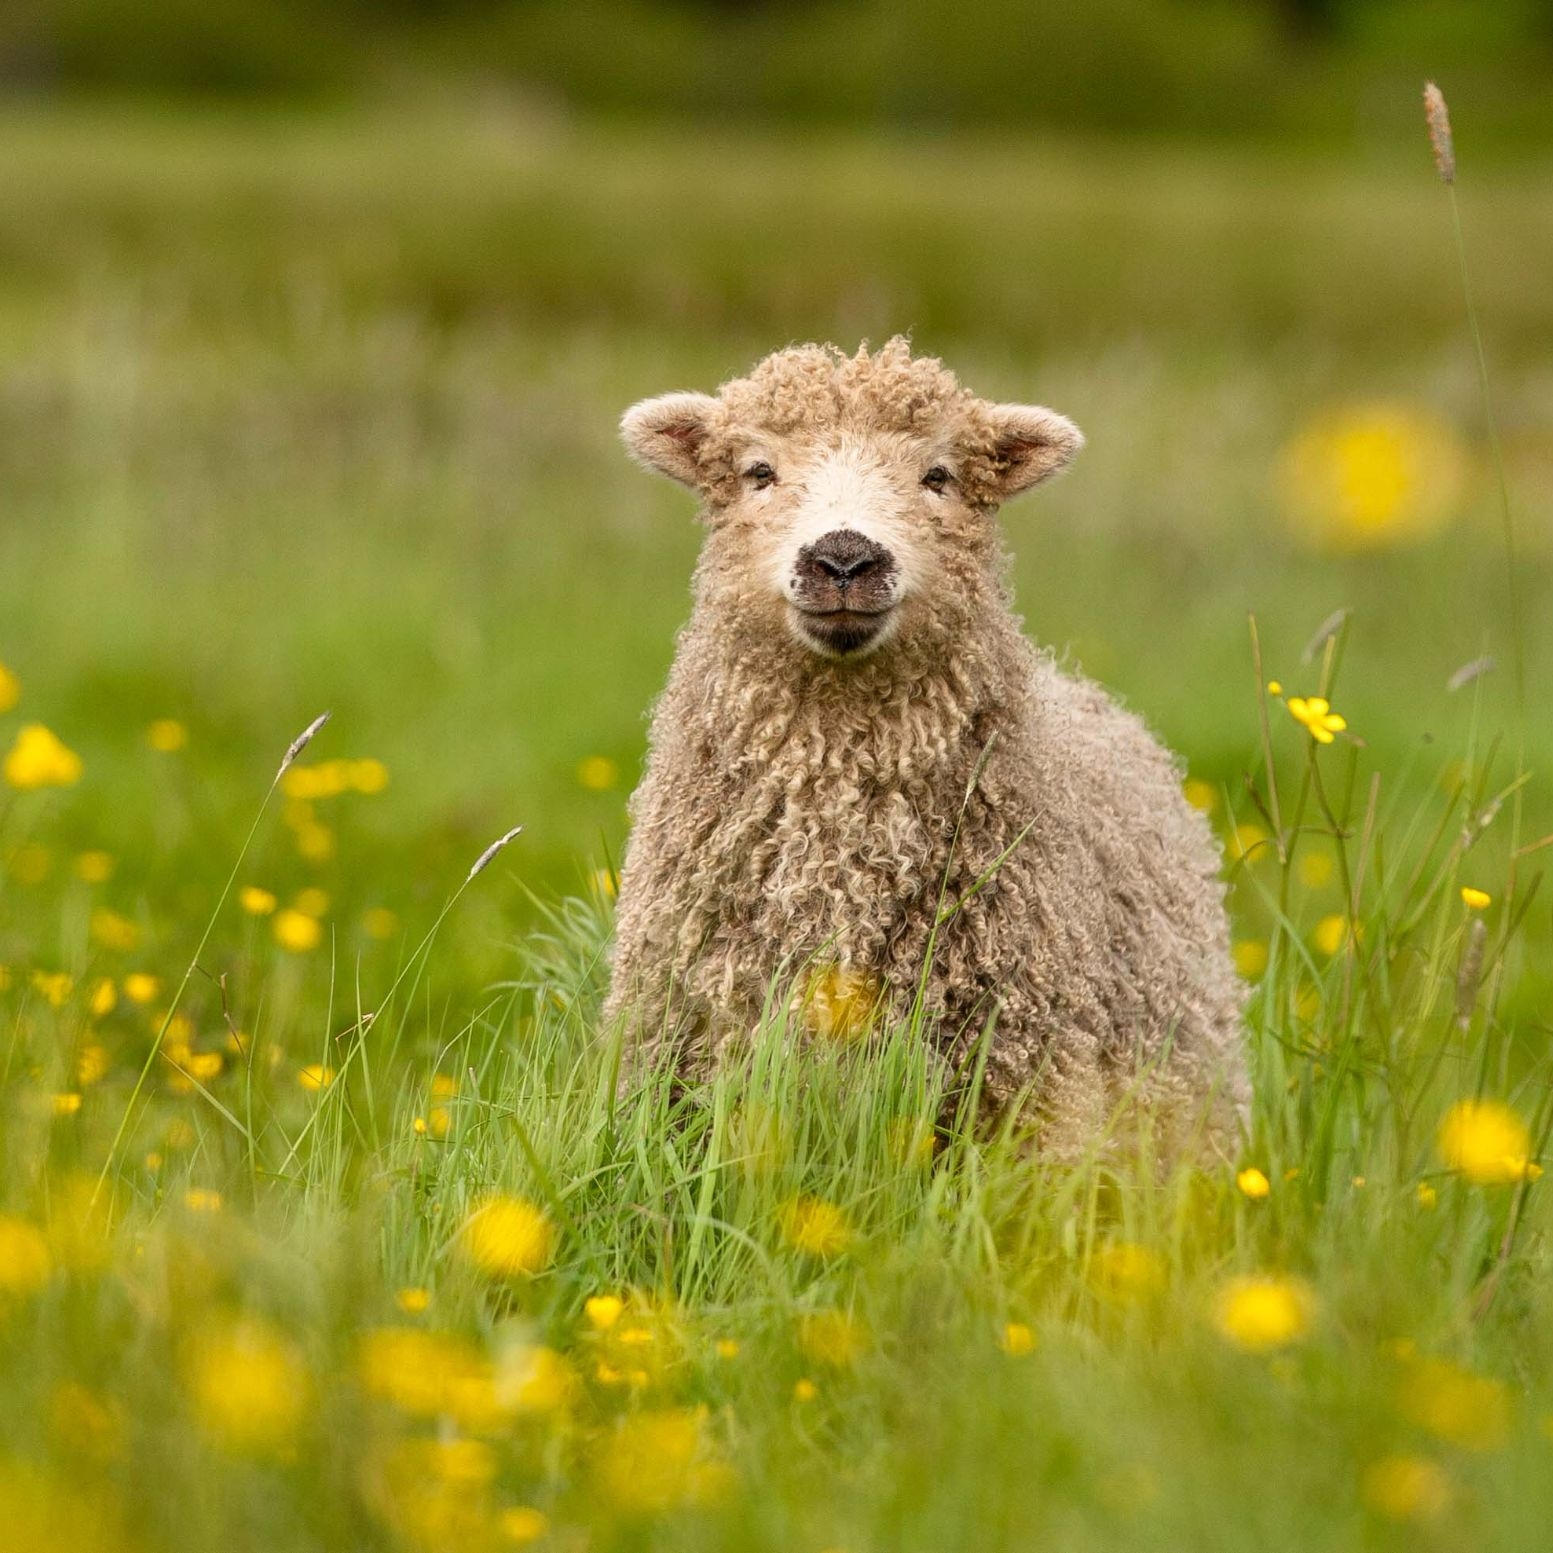 Greyface Dartmoor Lamb in Buttercups. Hand Made Greeting Cards